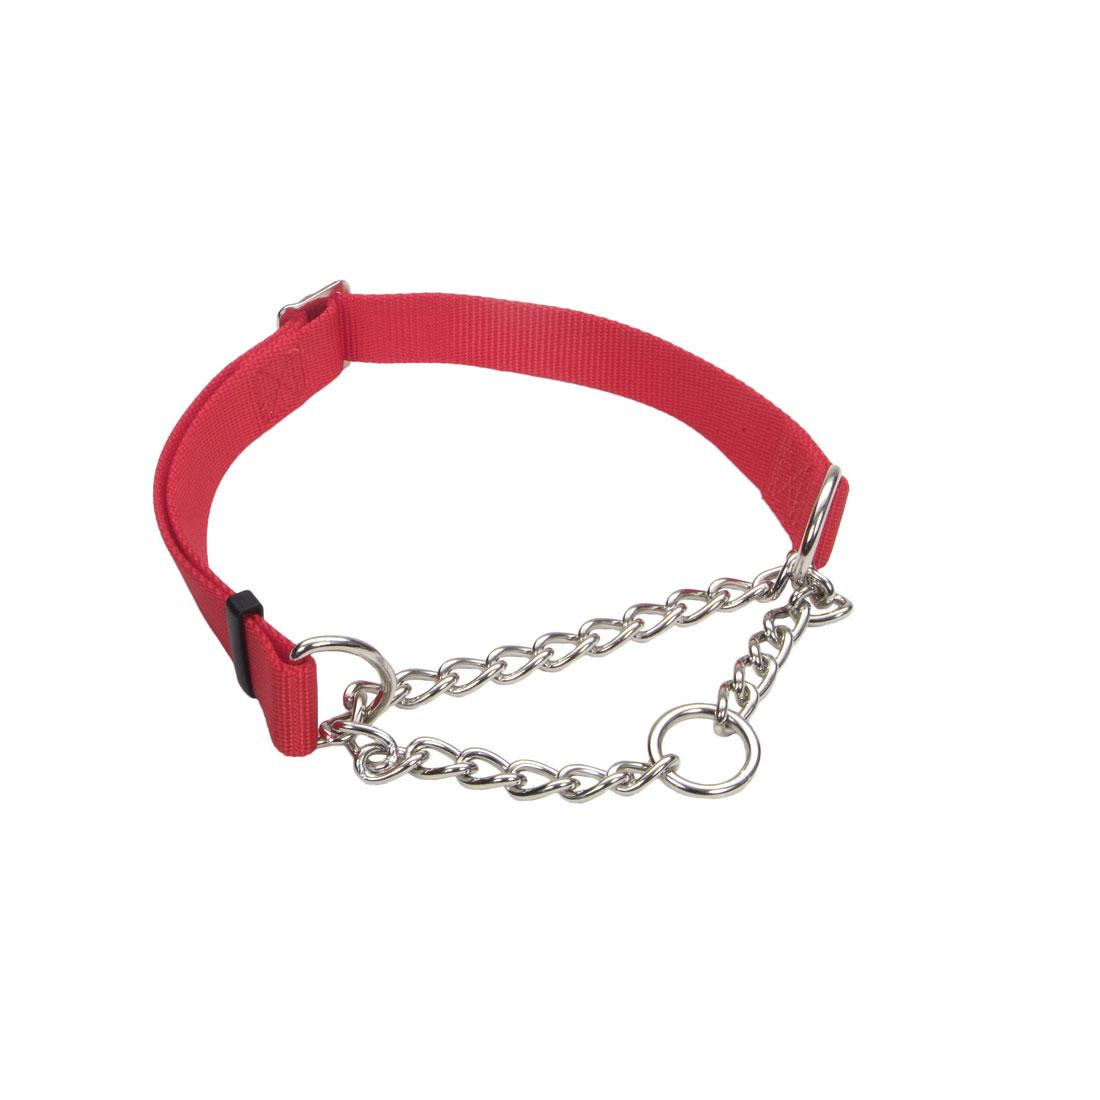 Coastal Adjustable Check Training Collar for Dogs, Red, 5/8-in x 10-14-in